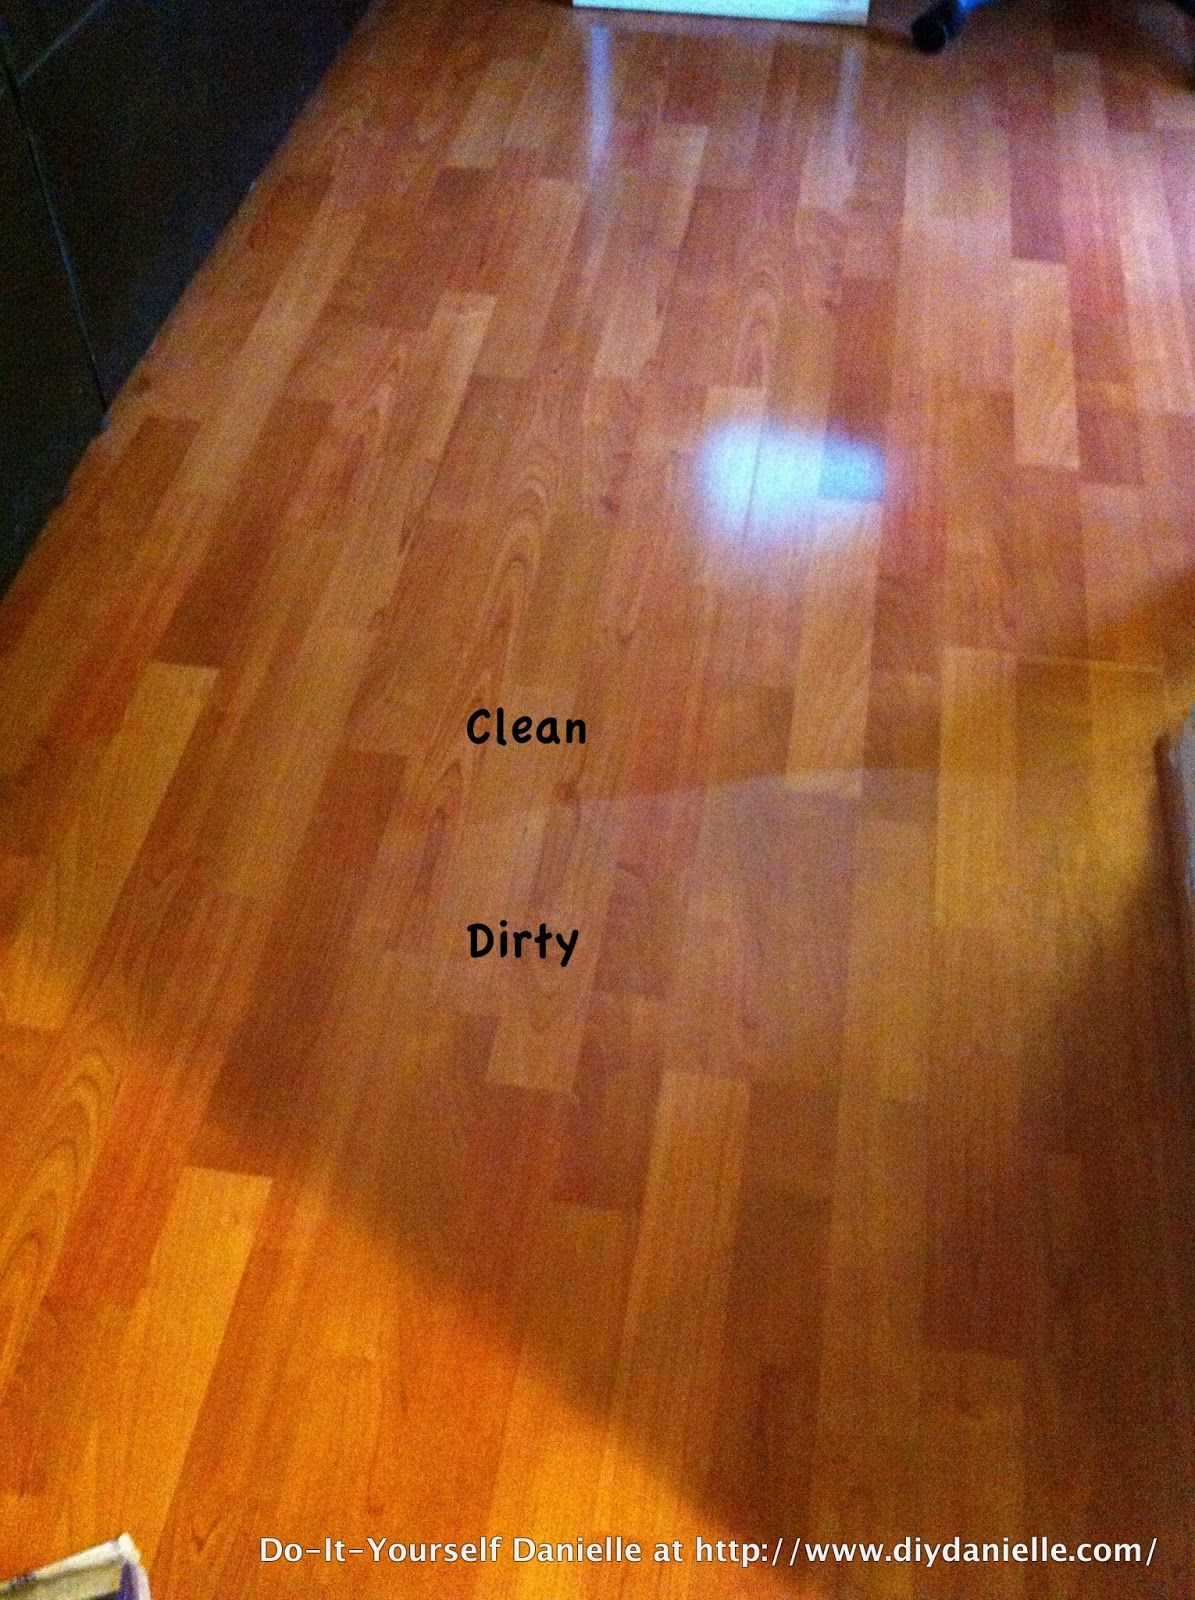 Diy laminate floor spraycleaner pinterest sprays and floor cleaners diy laminate floor spray how to make your own cleaner for laminate floors solutioingenieria Image collections